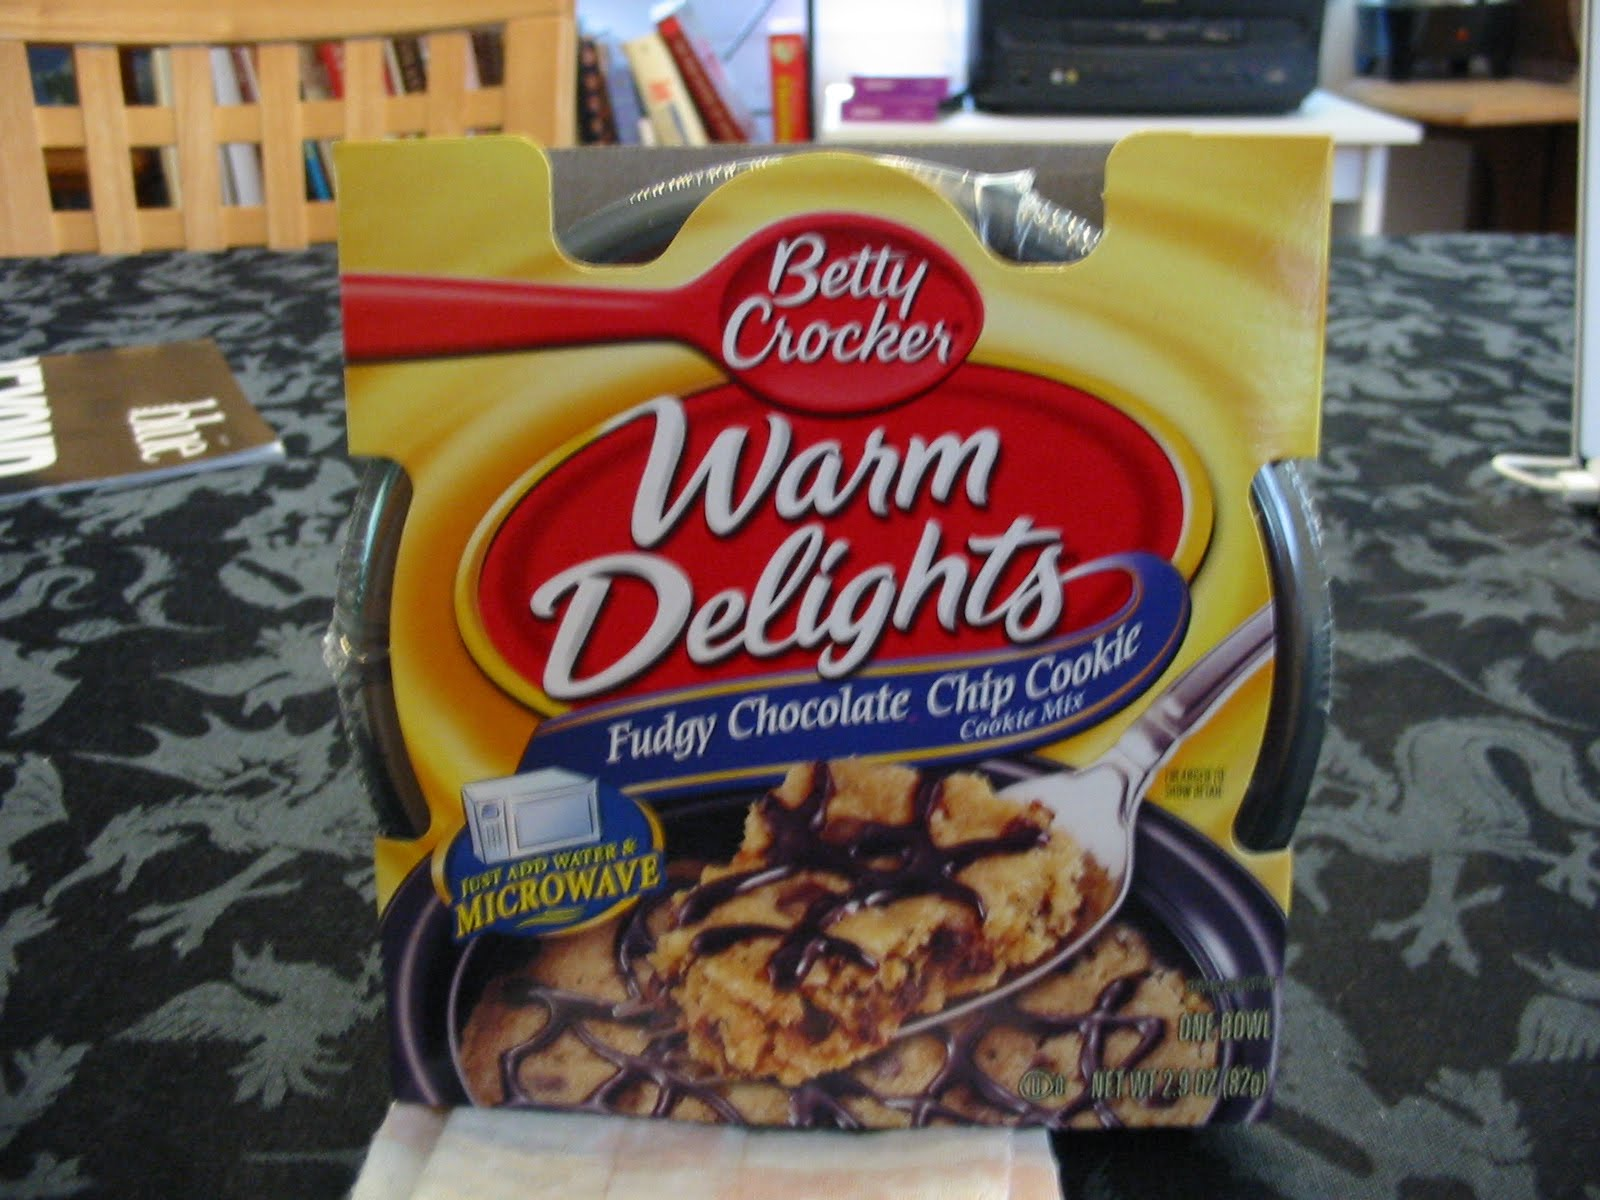 I Bought This Product The Fudgy Chocolate Chip Cookie Single Serving Microwavable Mix A While Back From Kroger When It Was On And Had